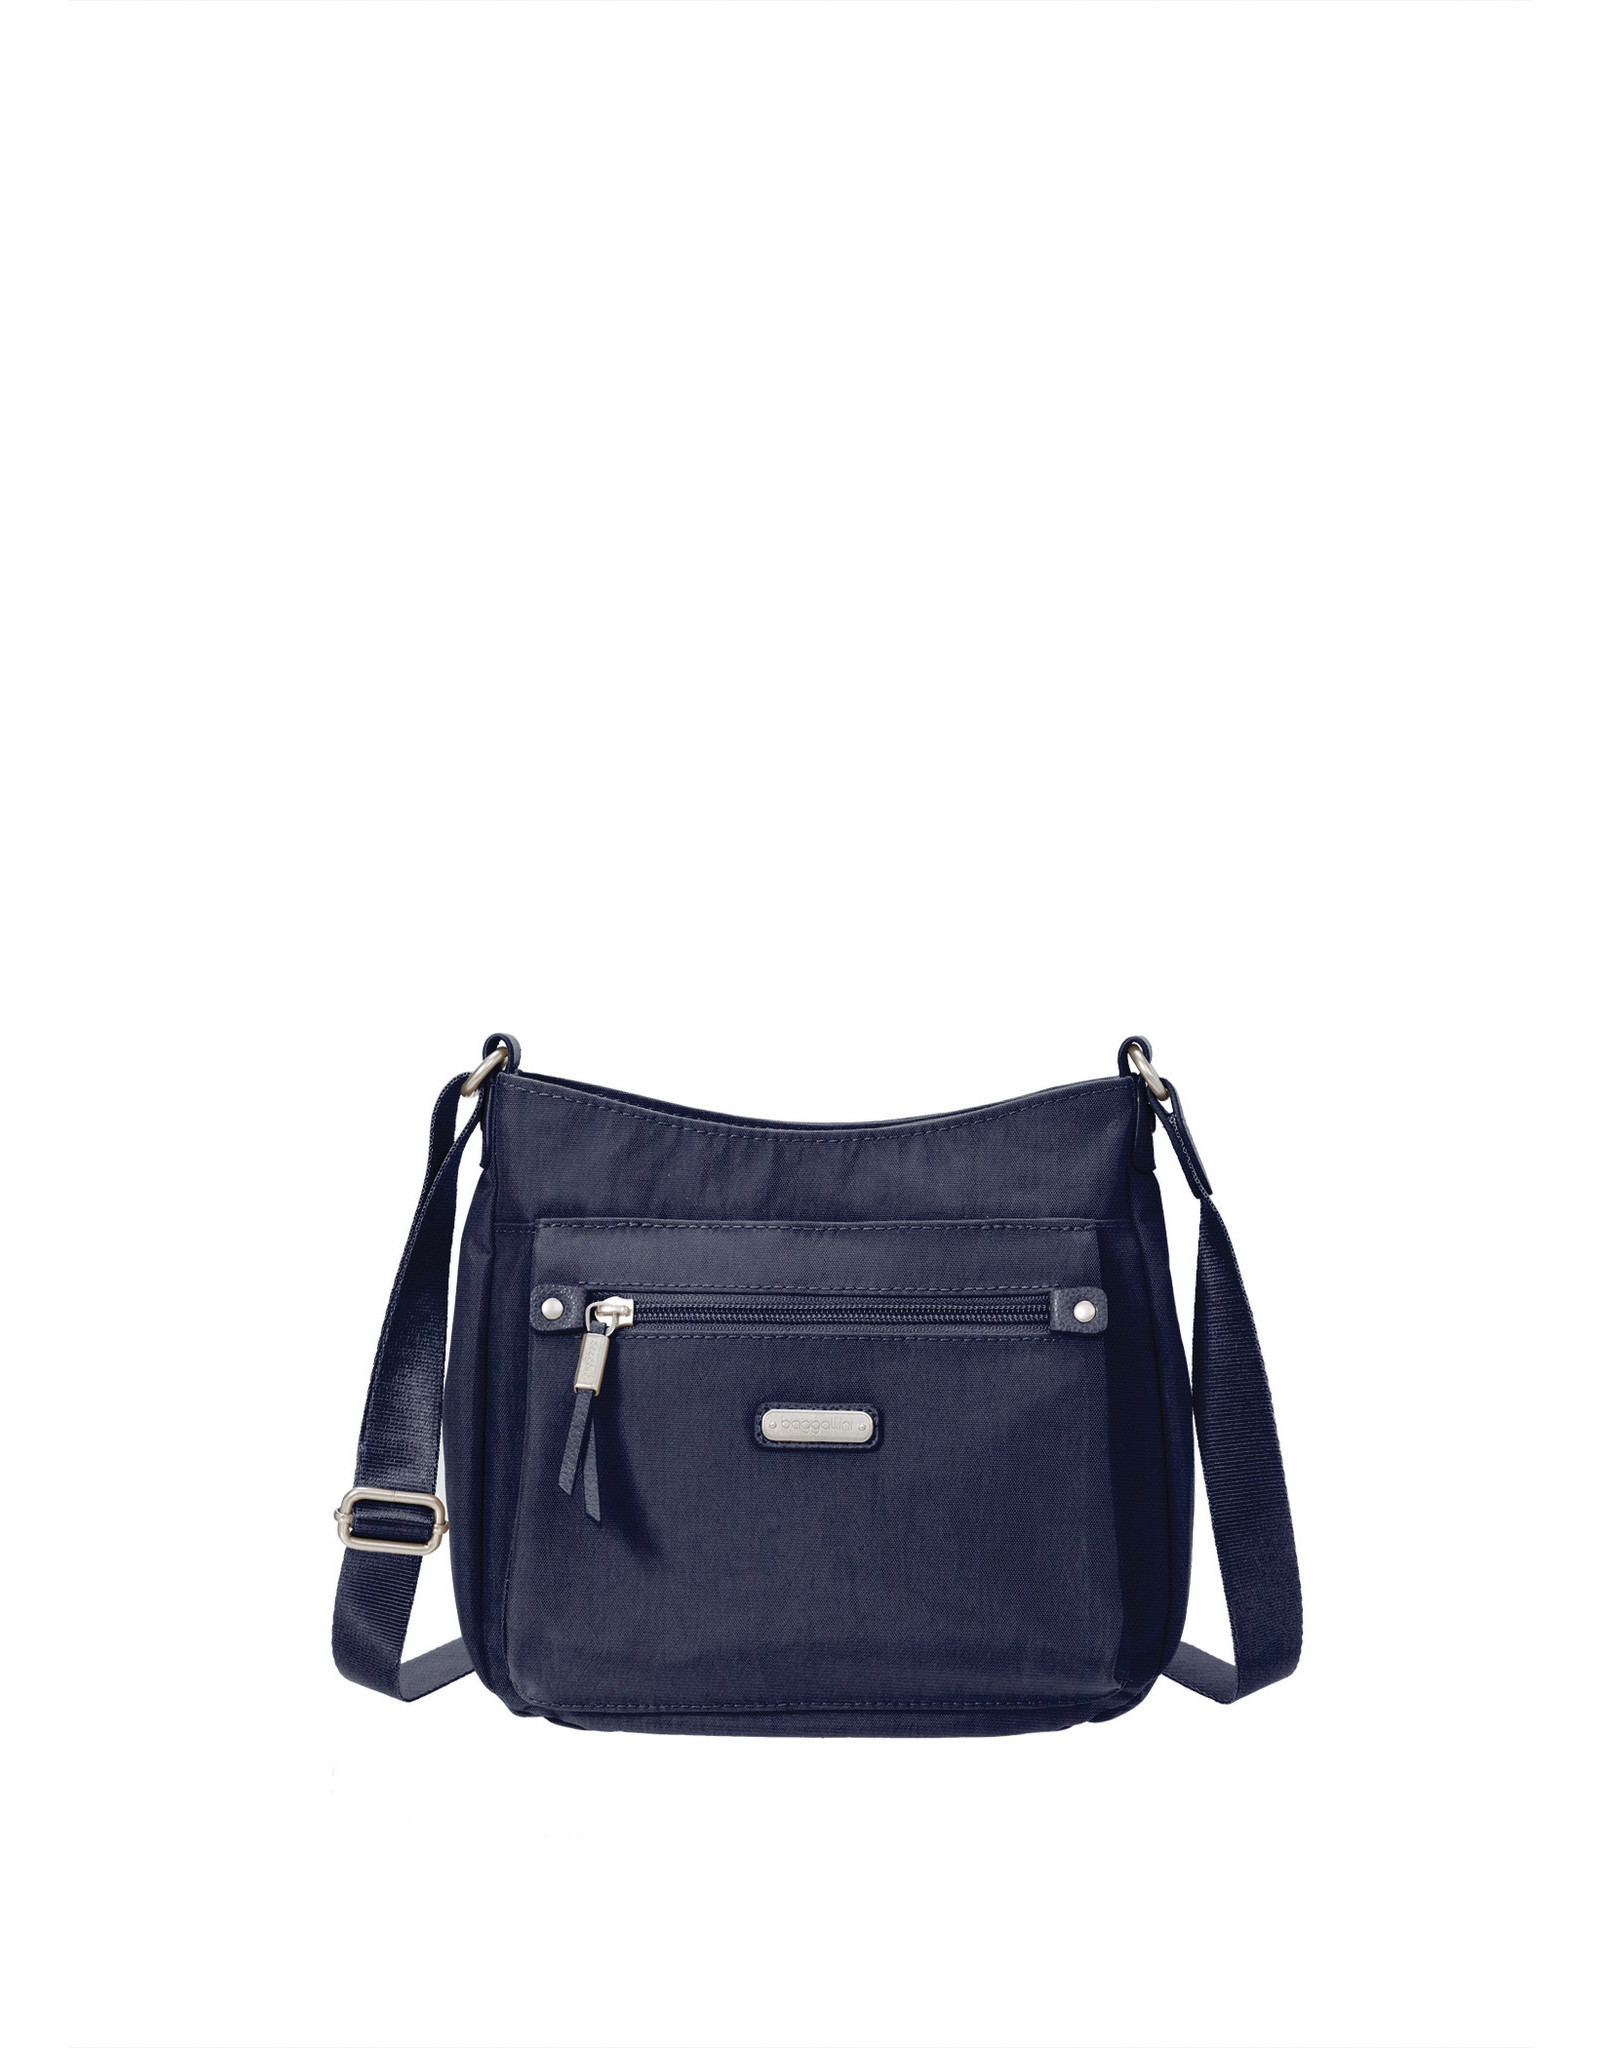 Baggallini Uptown Bagg with RFID Wristlet - Navy